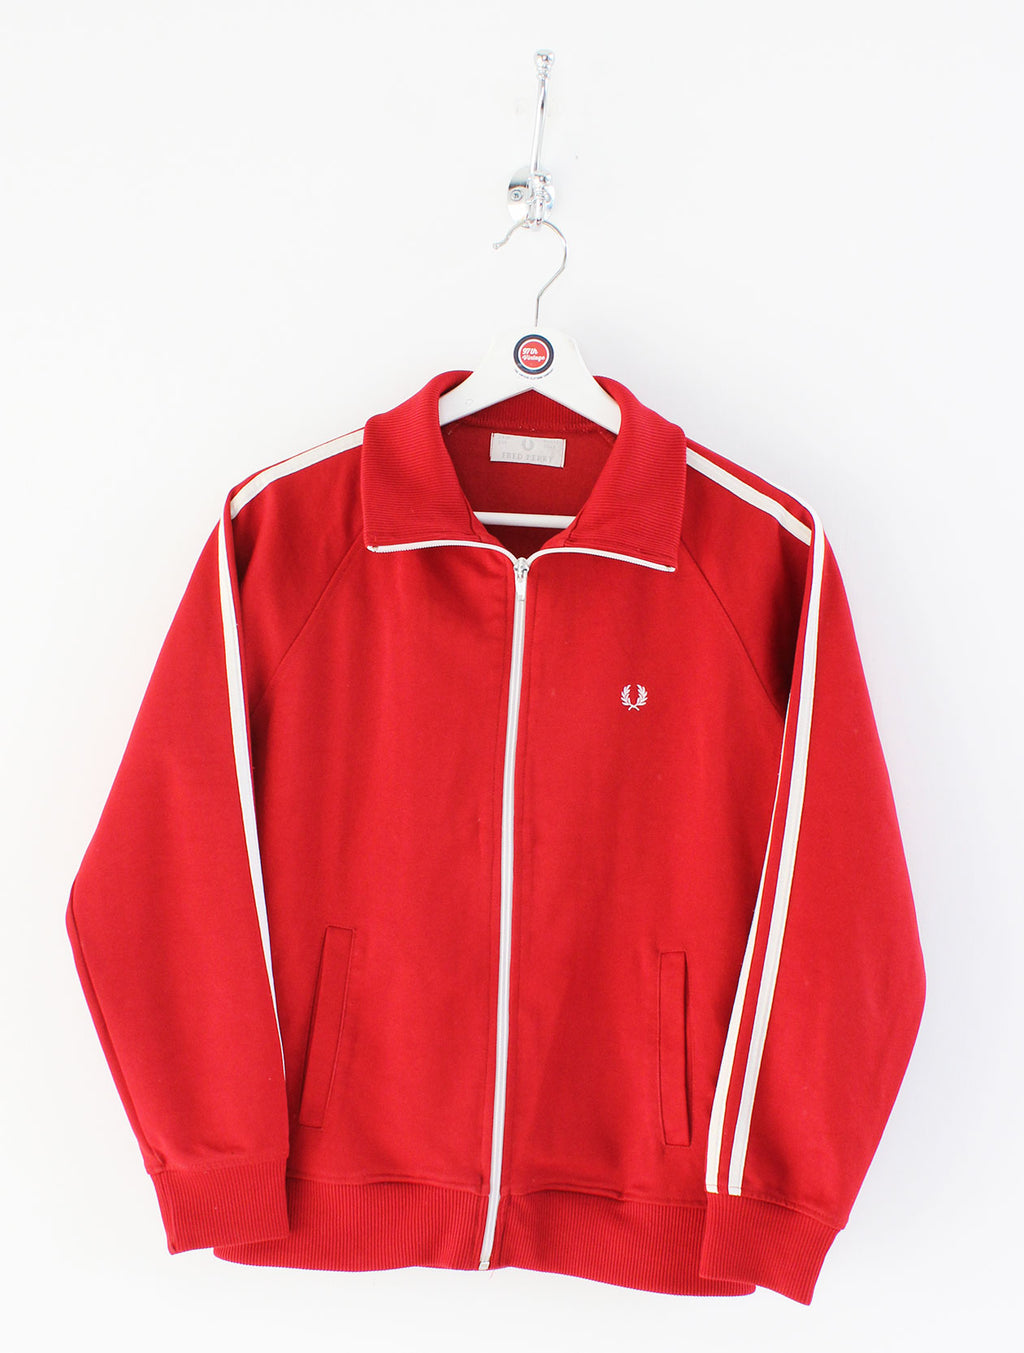 Women's Fred Perry Jacket (S)